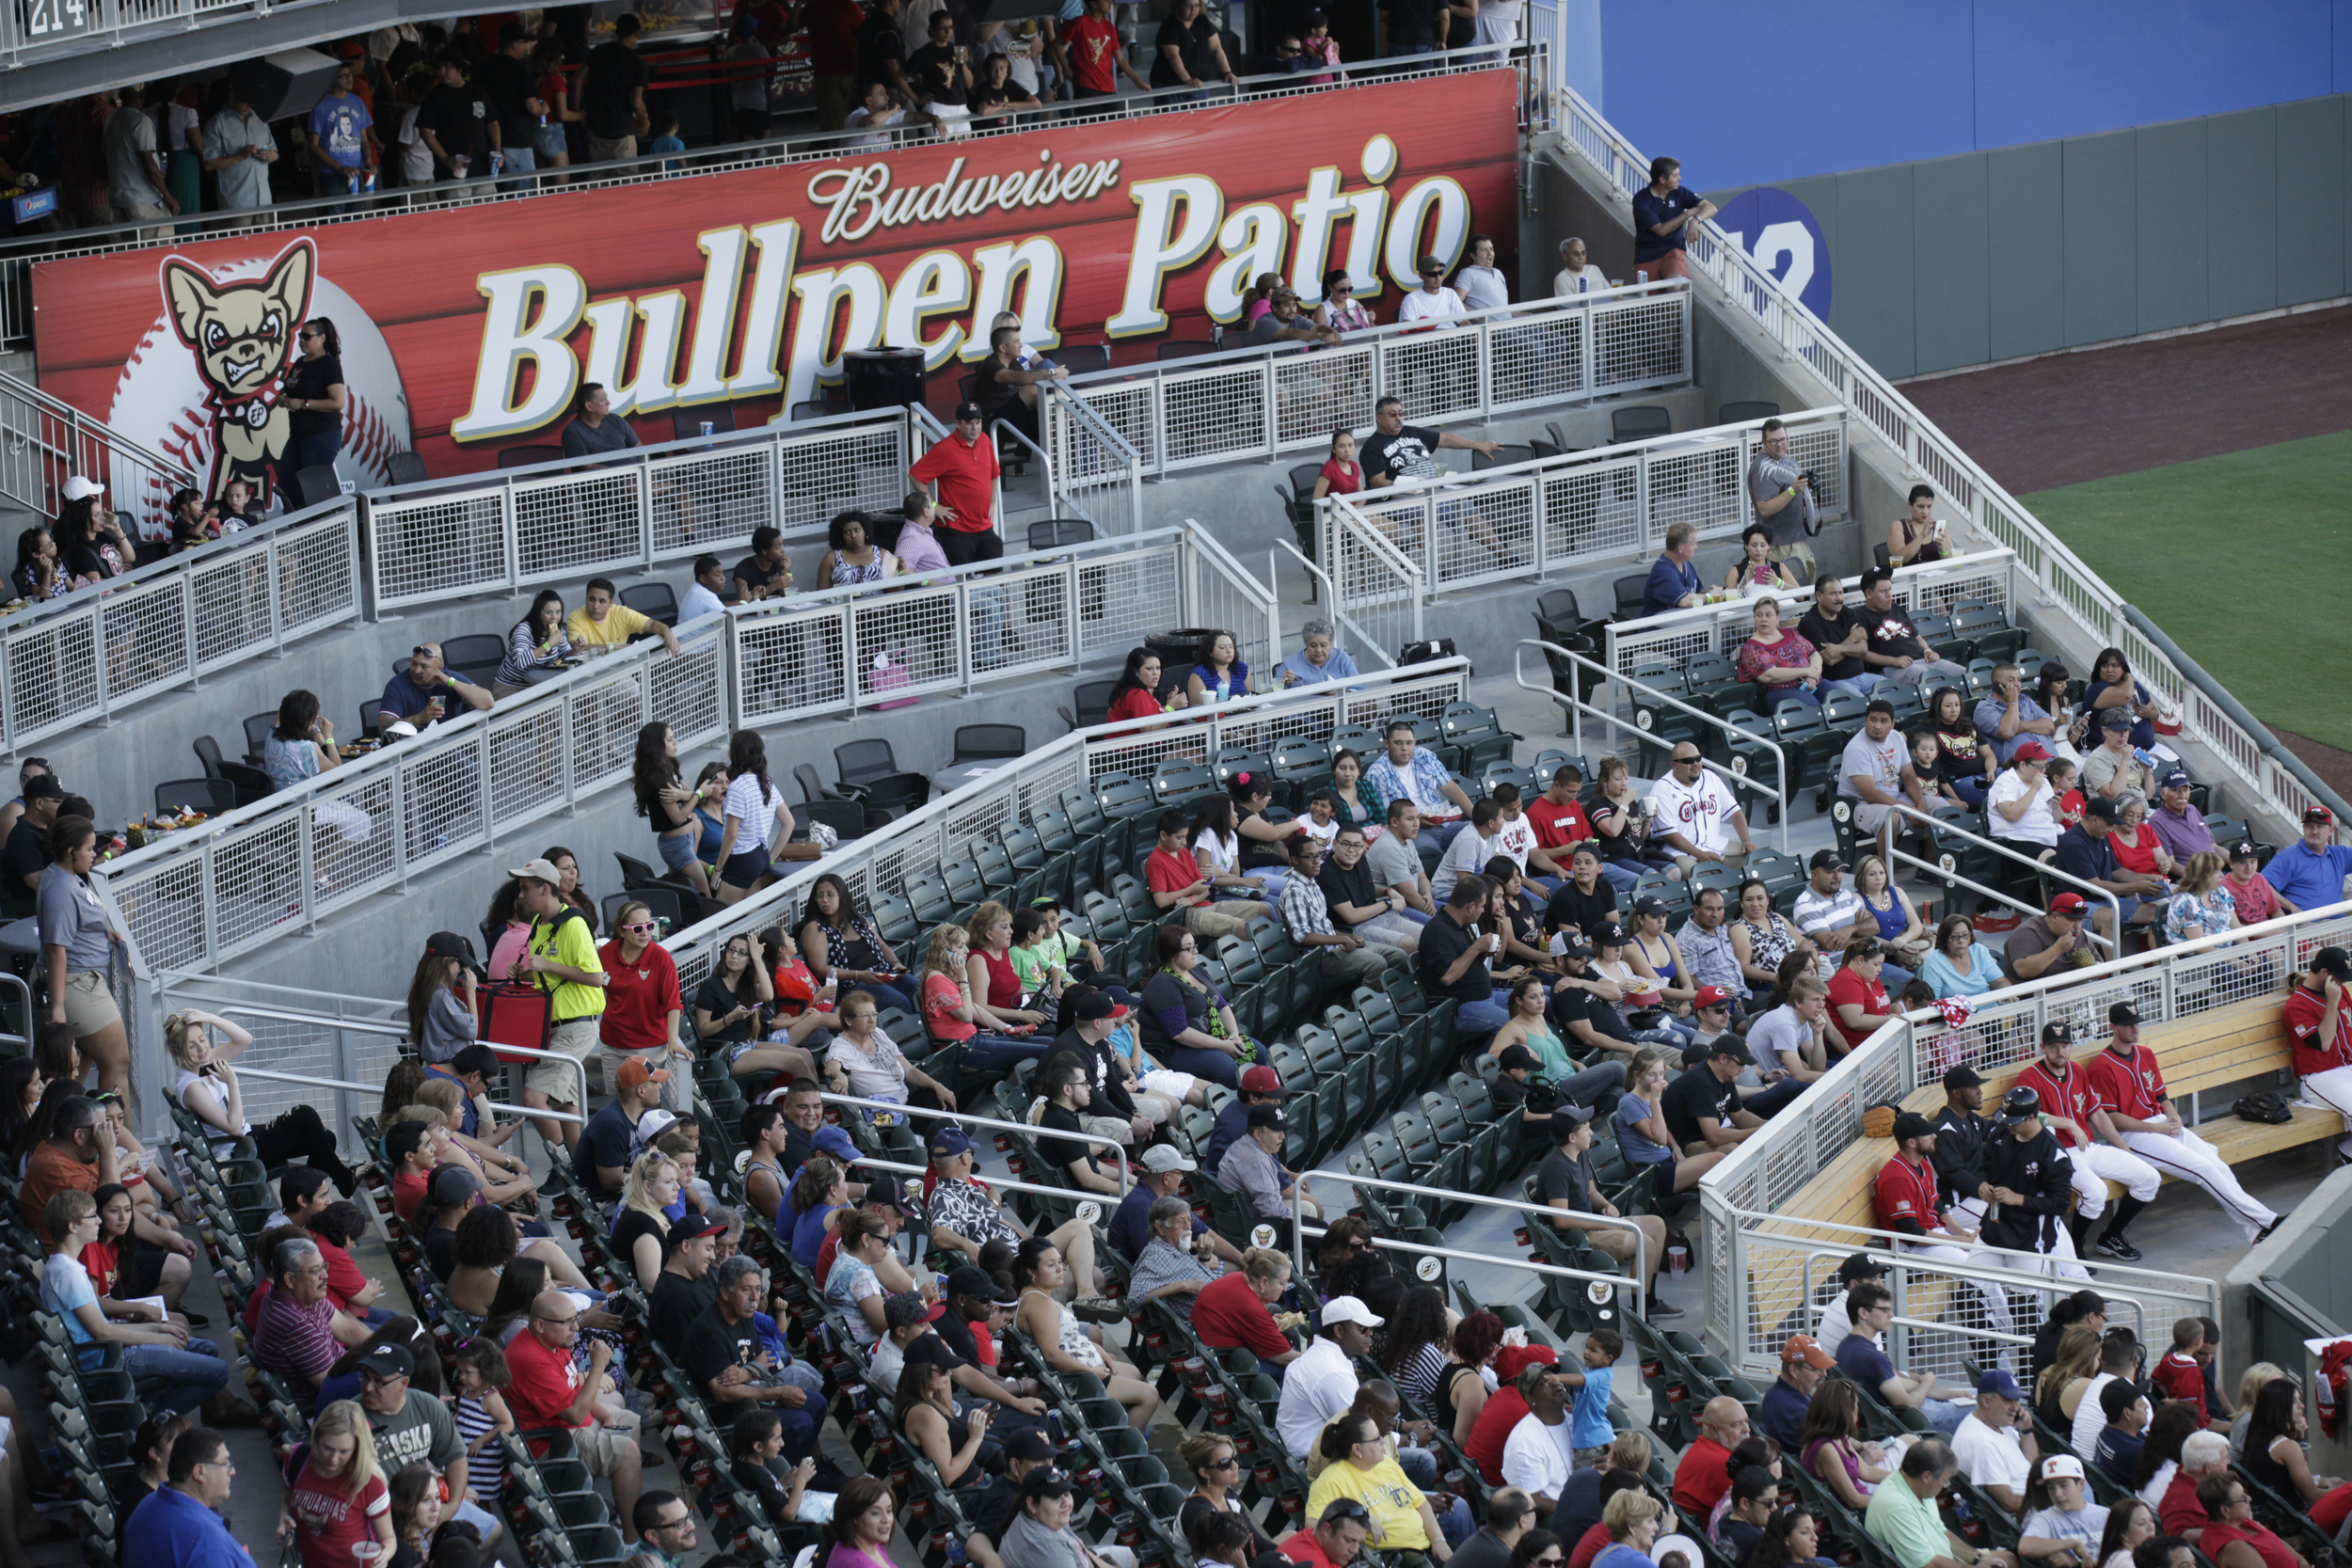 The Budweiser Bullpen Patio